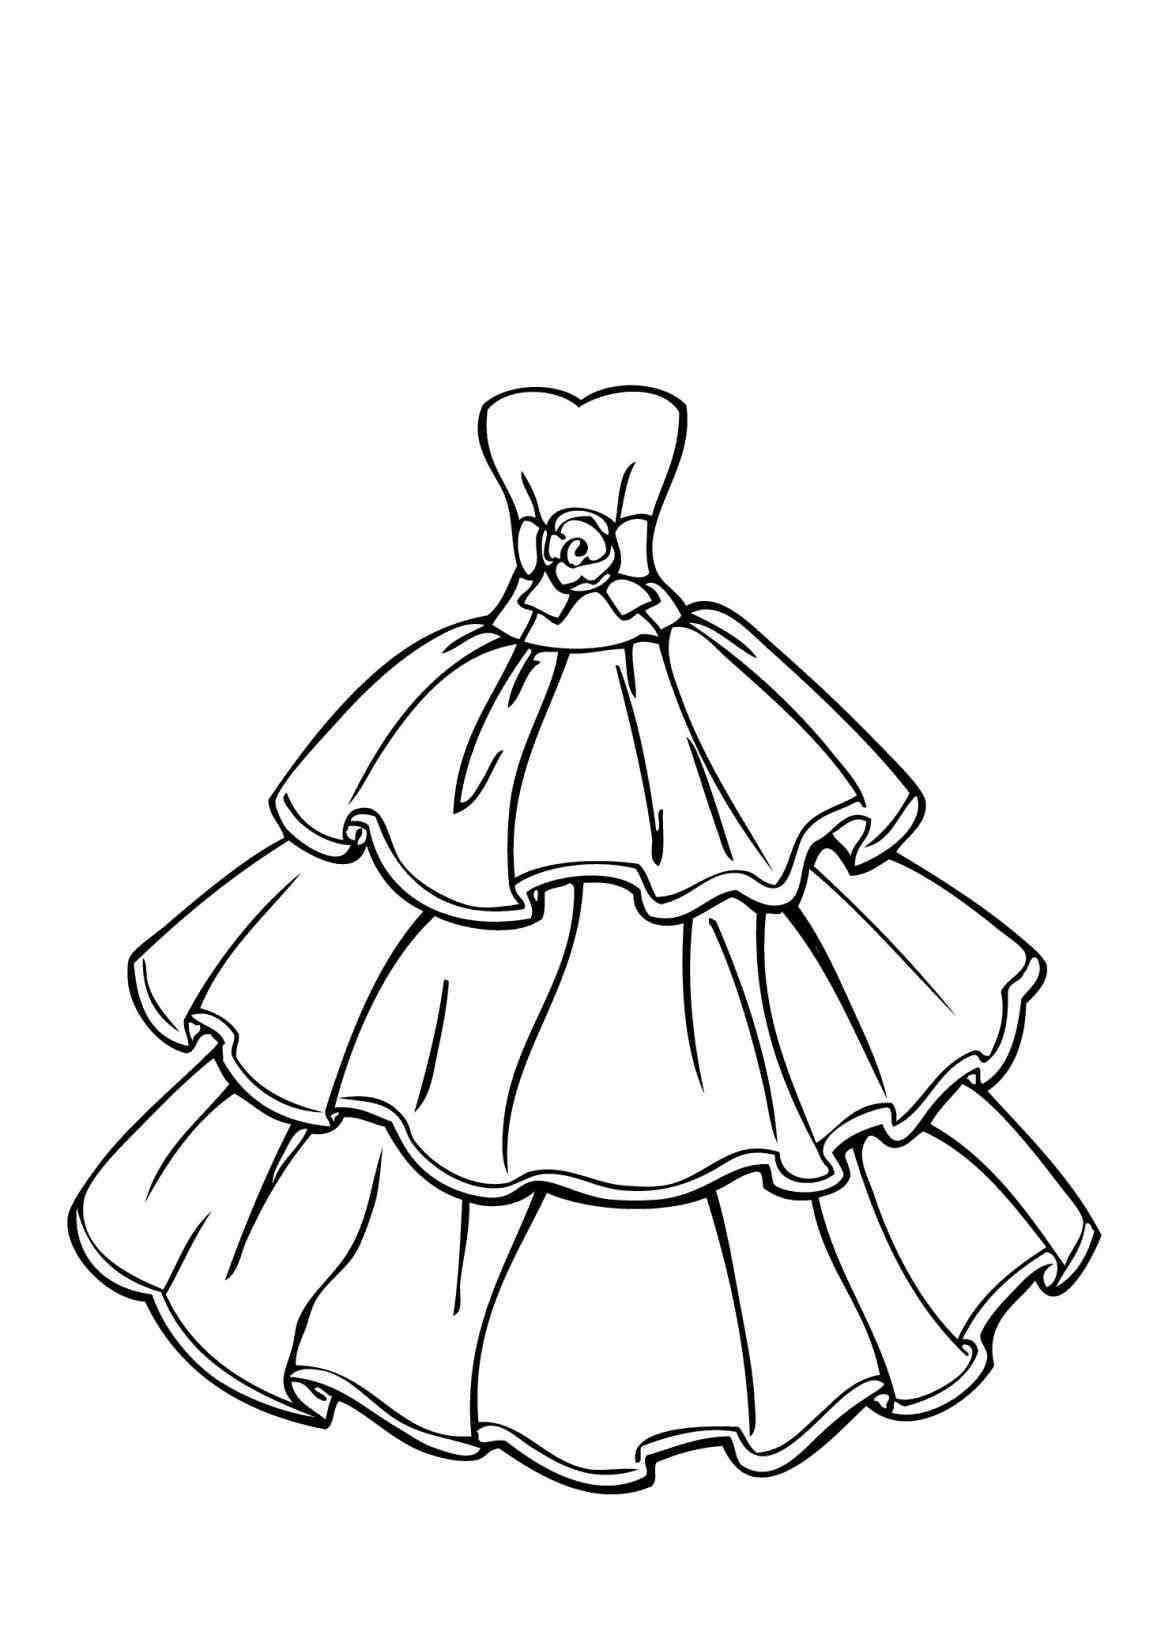 Top 10 new post easy wedding dress drawing step by step visit wedbridal site